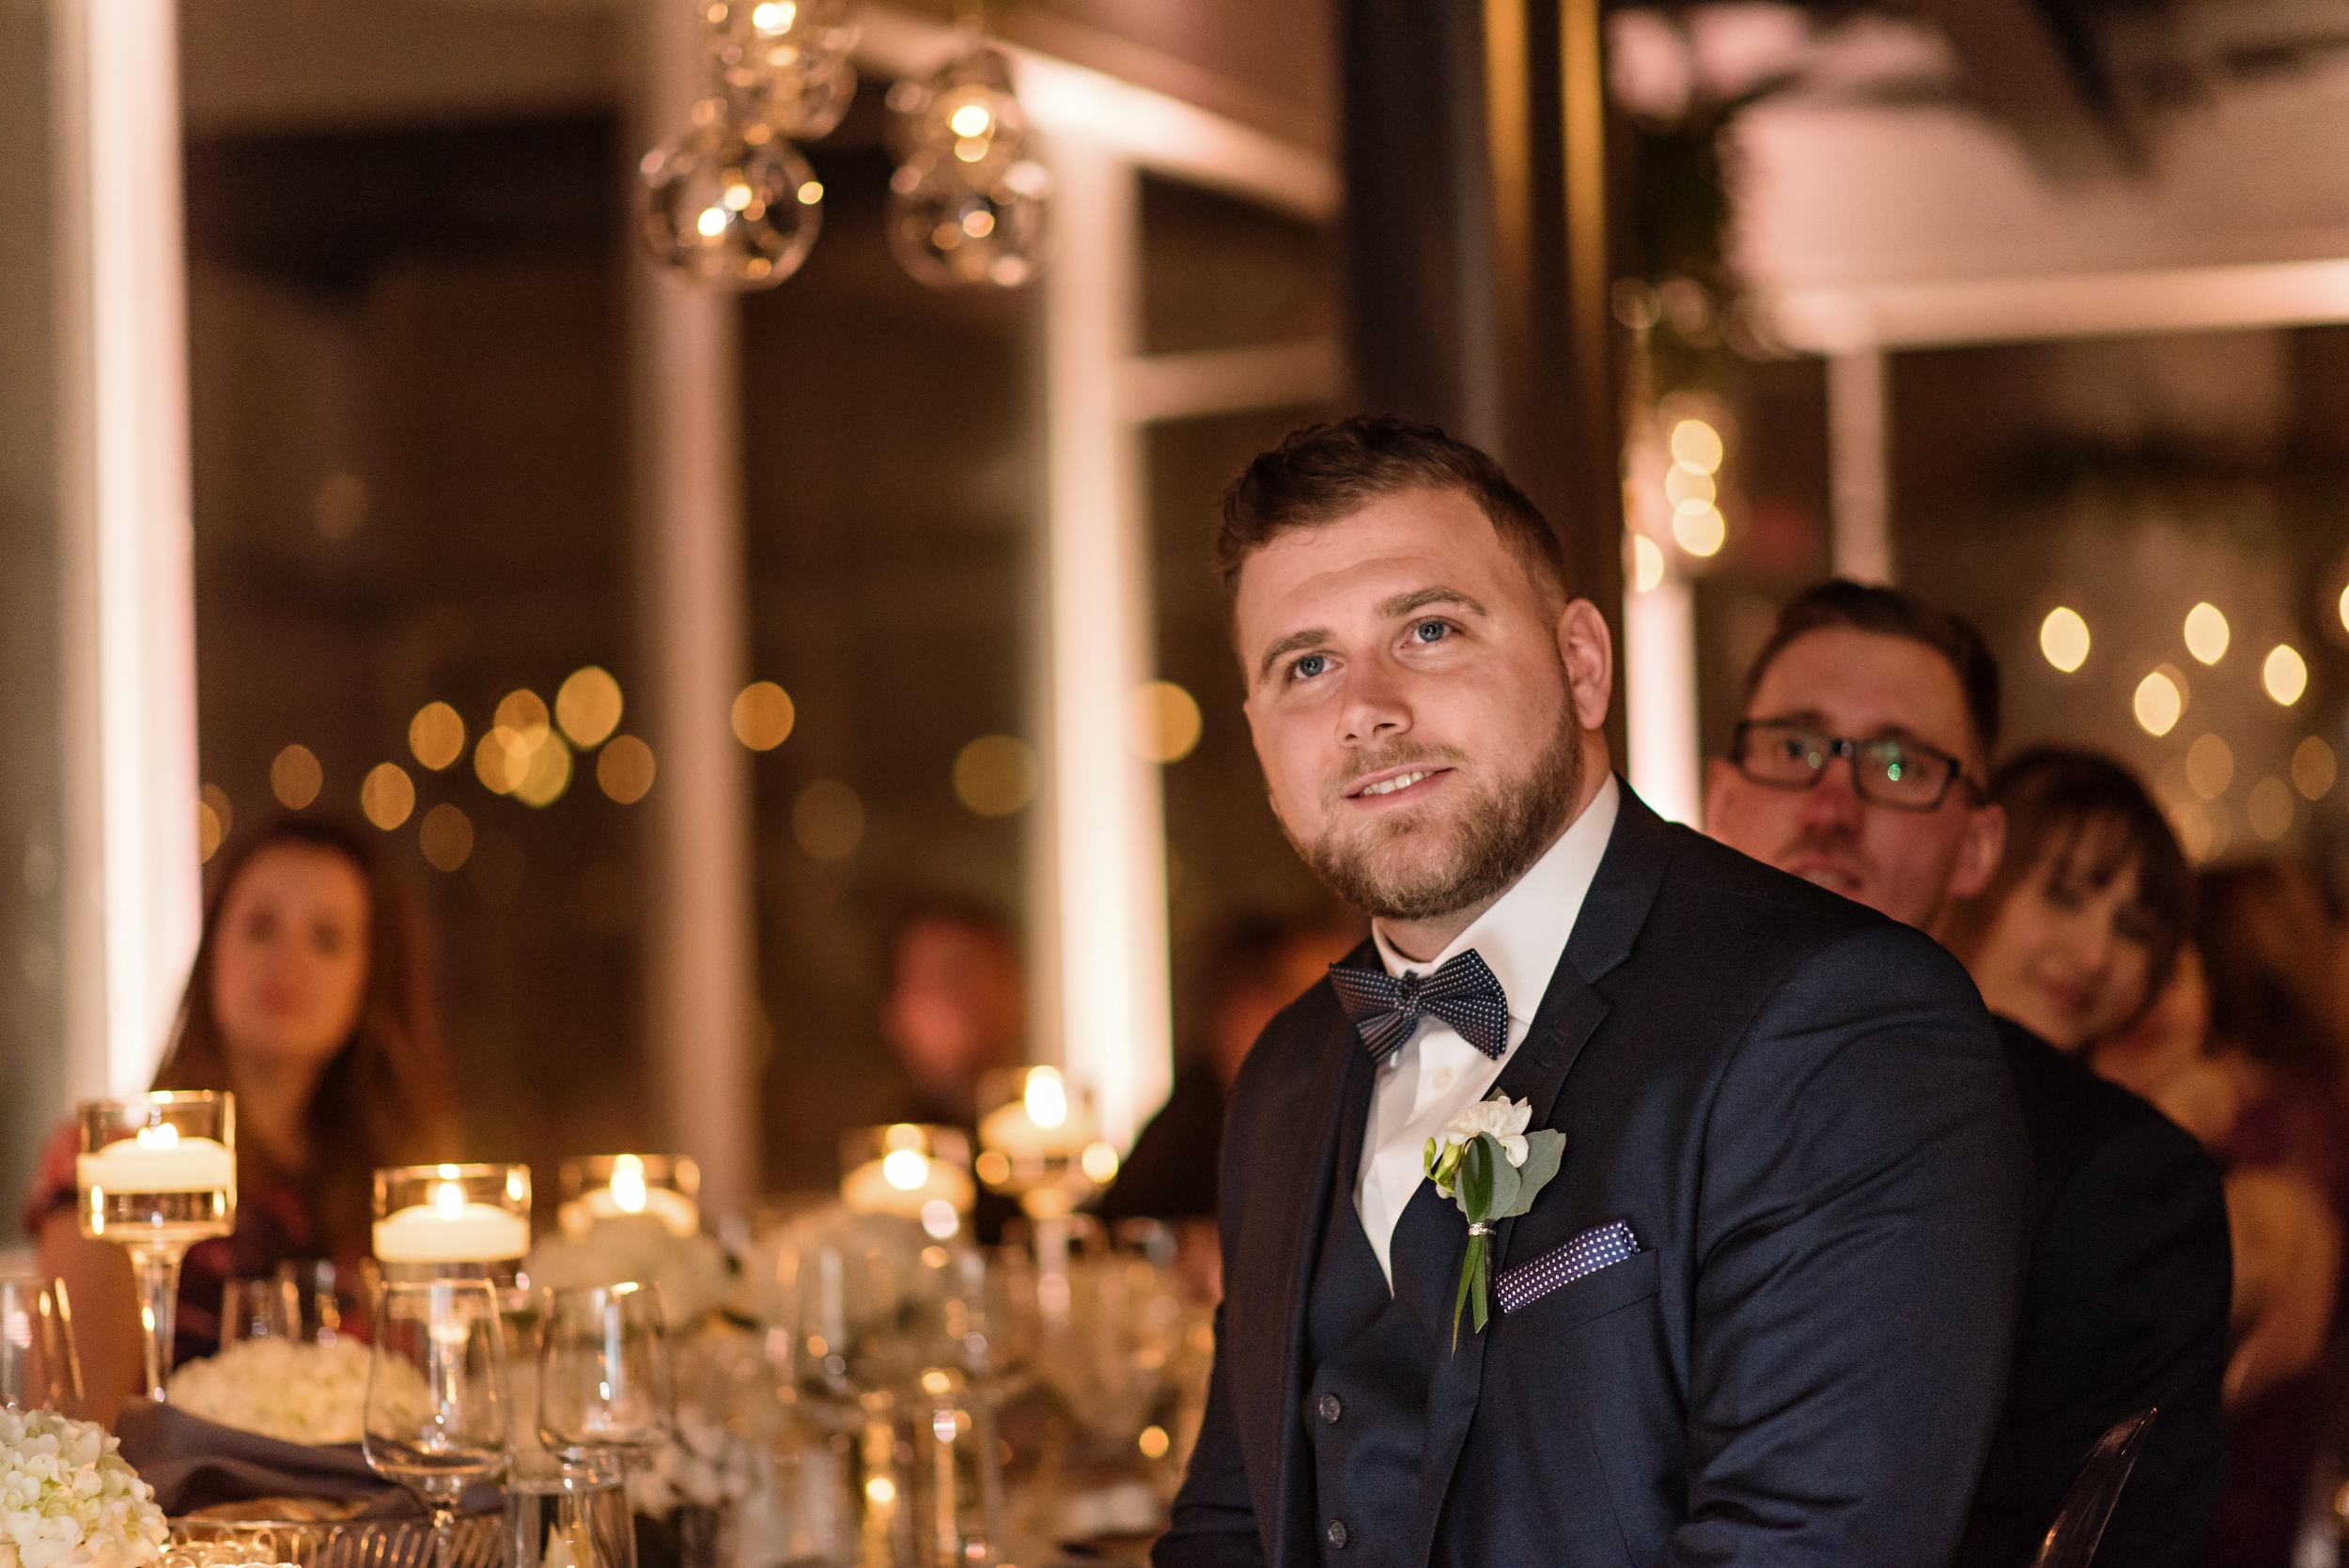 A photo of the brides brother during her speech at the wedding reception